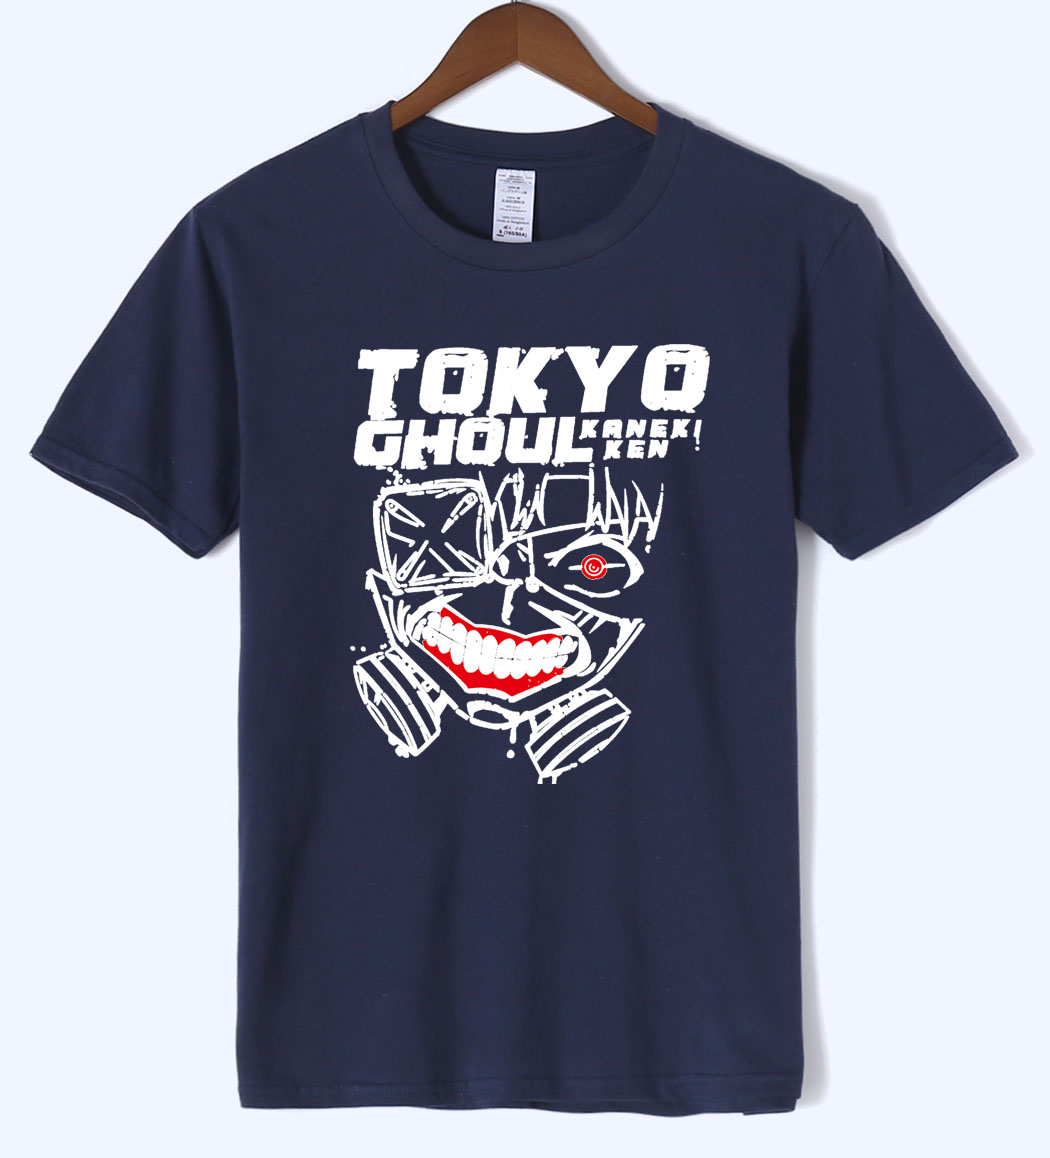 2019 summer T-shirt short sleeve Anime Tokyo Ghoul fashion cool men's T-shirts rocking hip hop style brand clothing tops tees